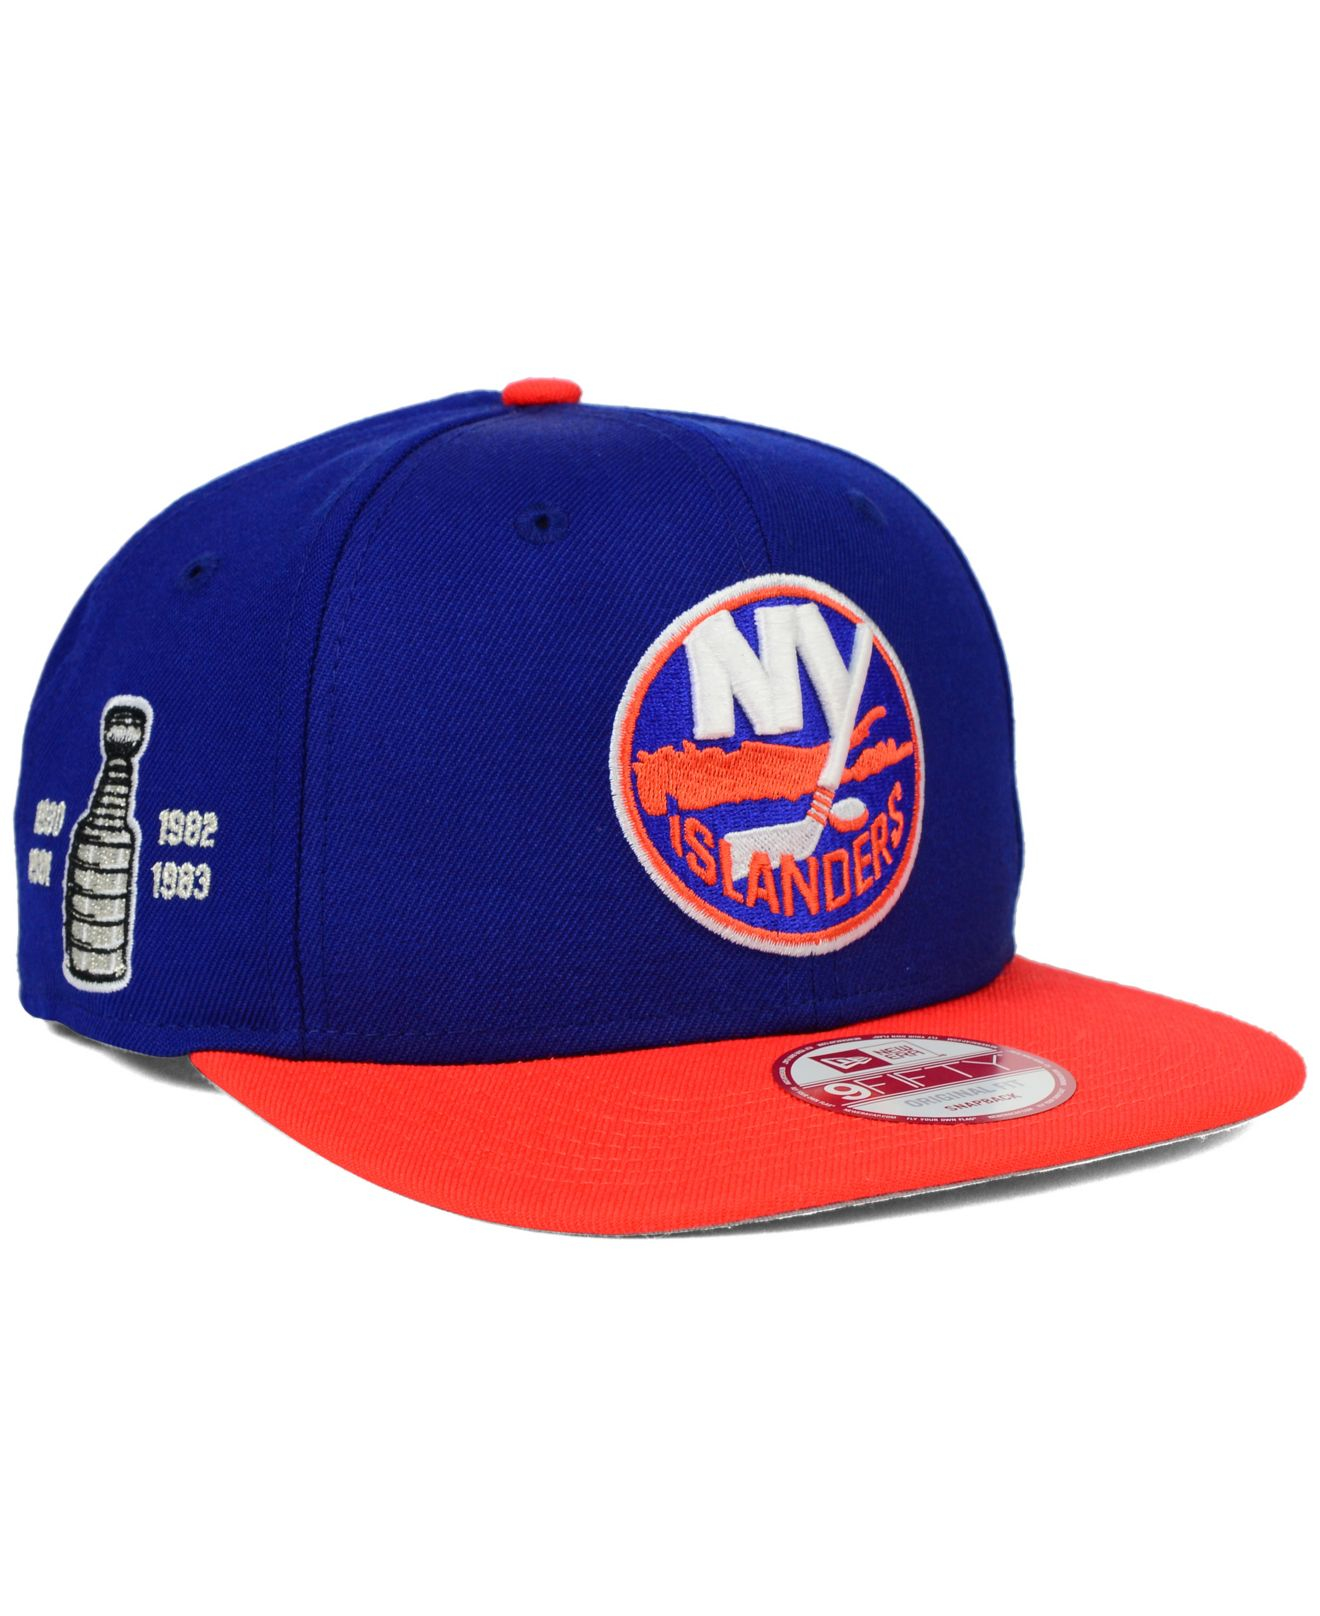 check out 6cd22 8c46b KTZ New York Islanders Stanley Cup Champ Collection 9fifty Snapback ...